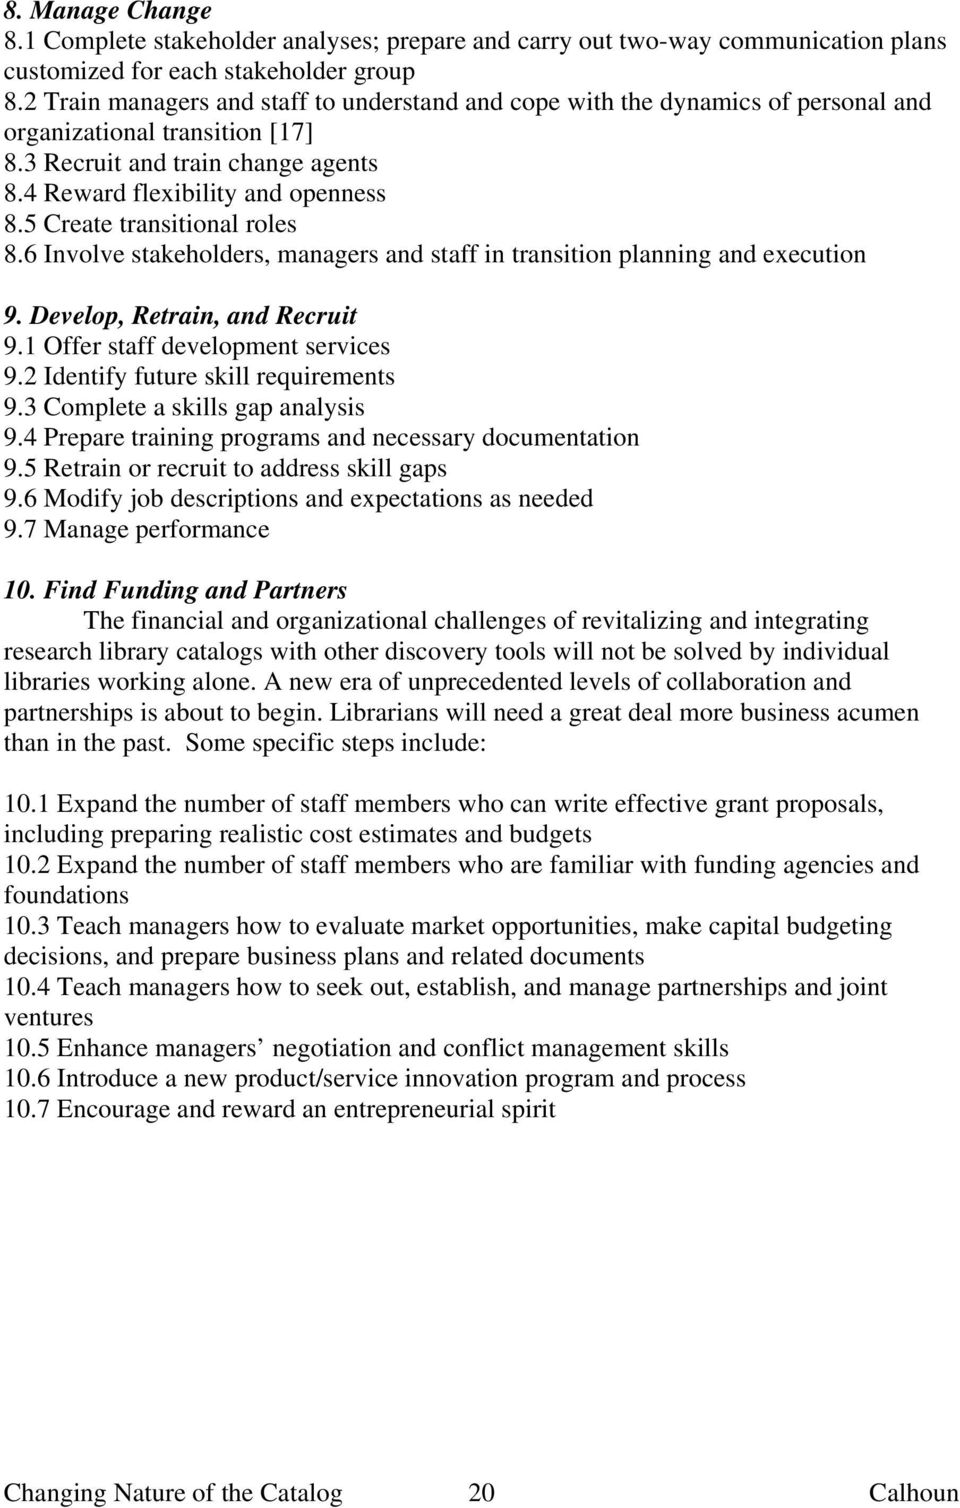 5 Create transitional roles 8.6 Involve stakeholders, managers and staff in transition planning and execution 9. Develop, Retrain, and Recruit 9.1 Offer staff development services 9.